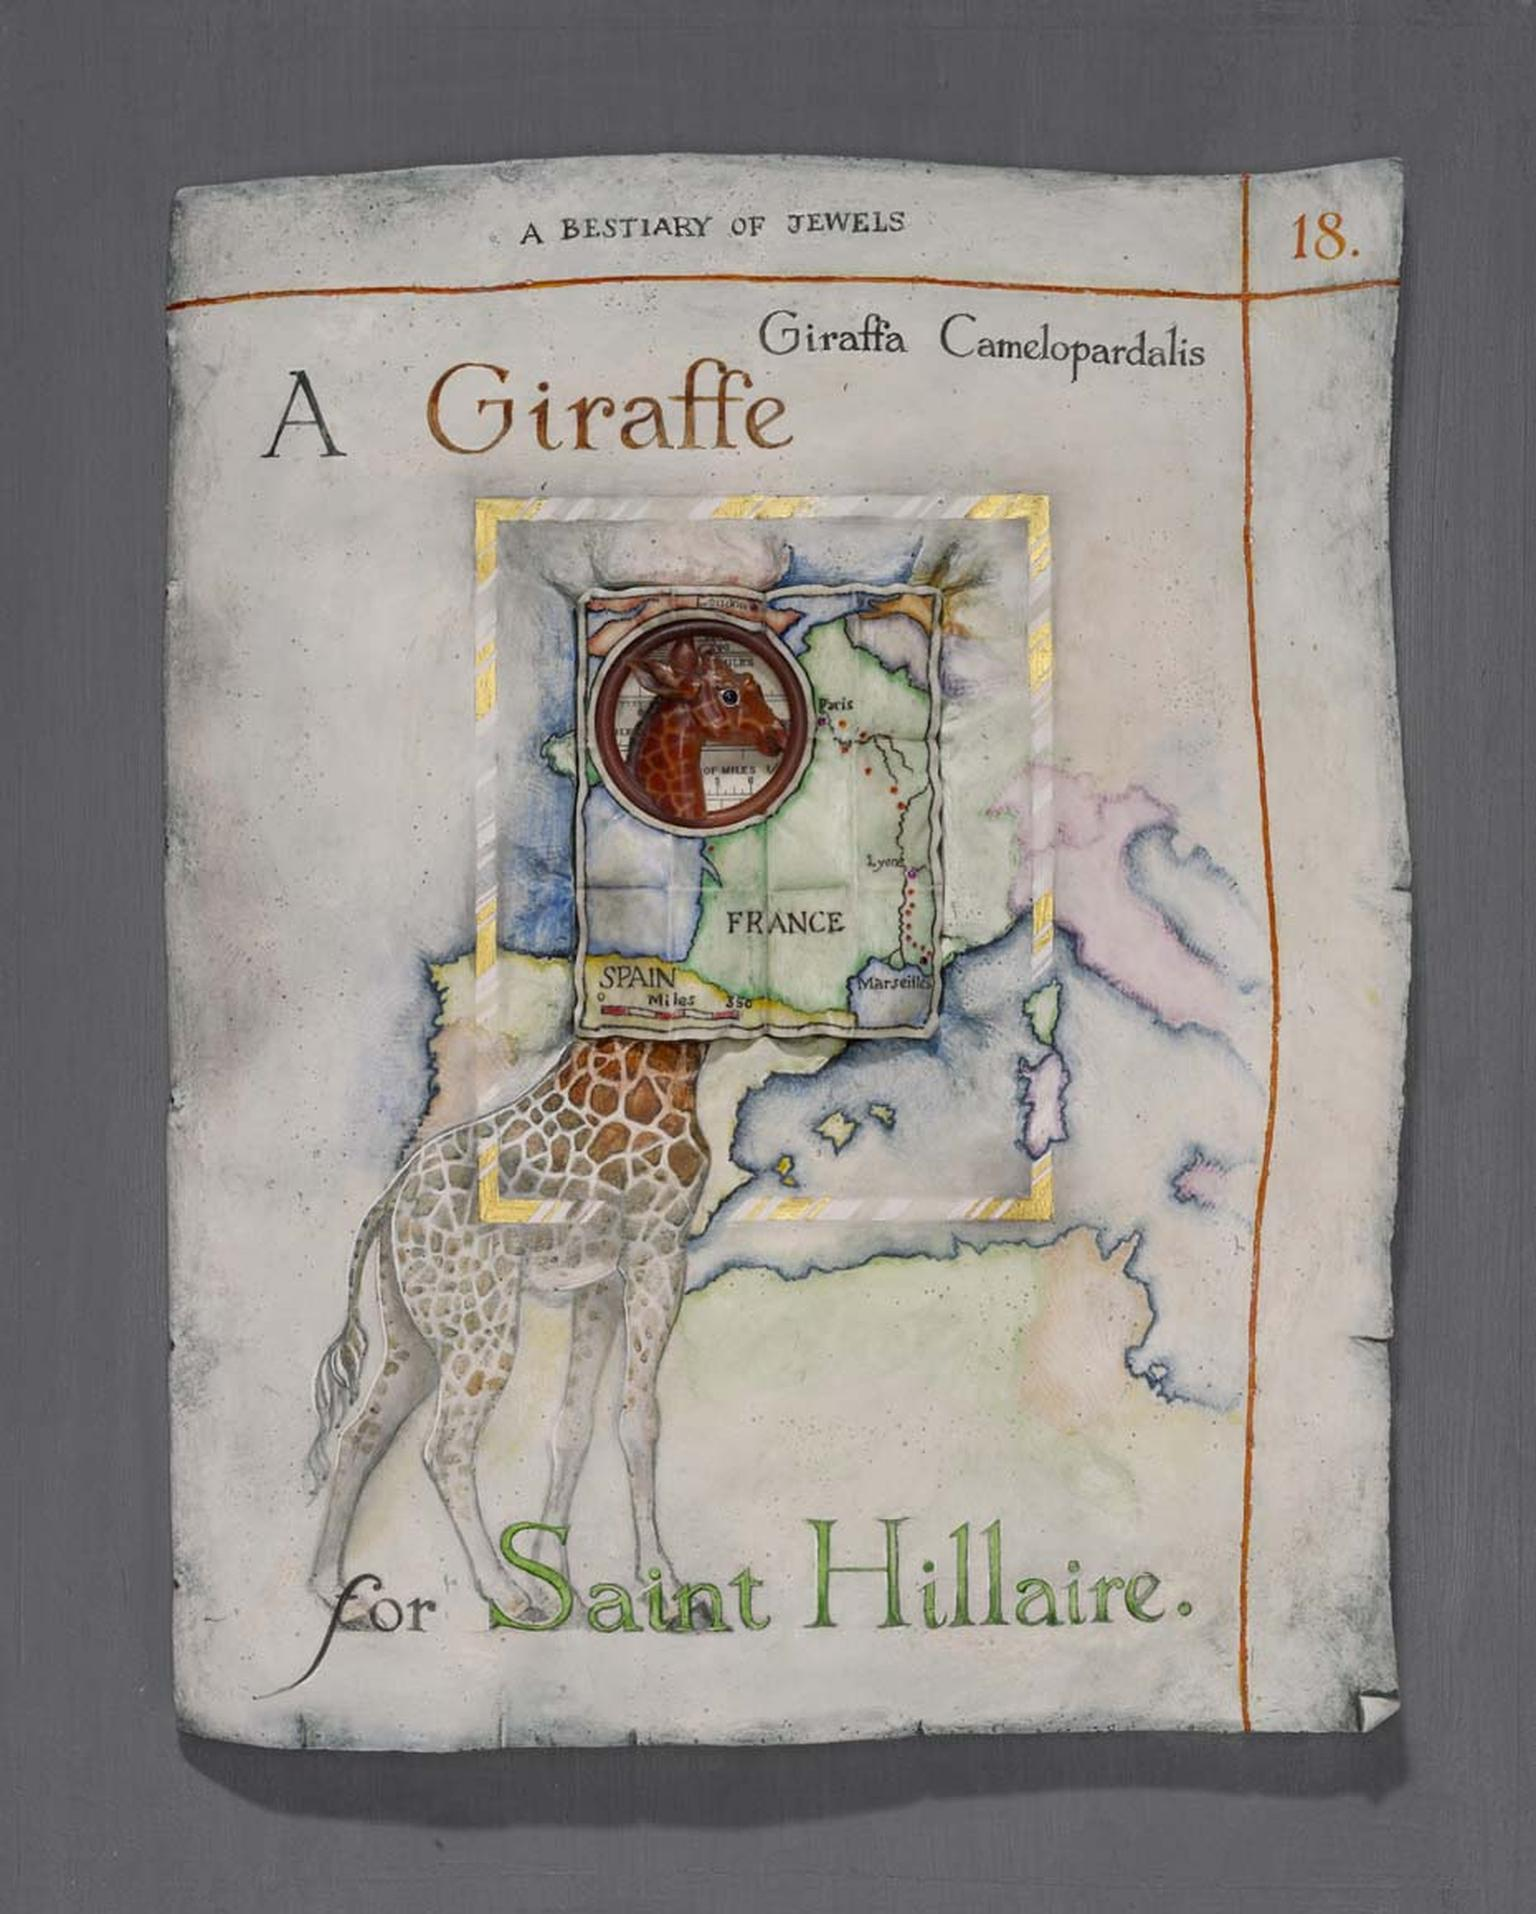 Kevin Coates 'A Giraffe for Saint Hillaire' 2013 Pectoral brooch